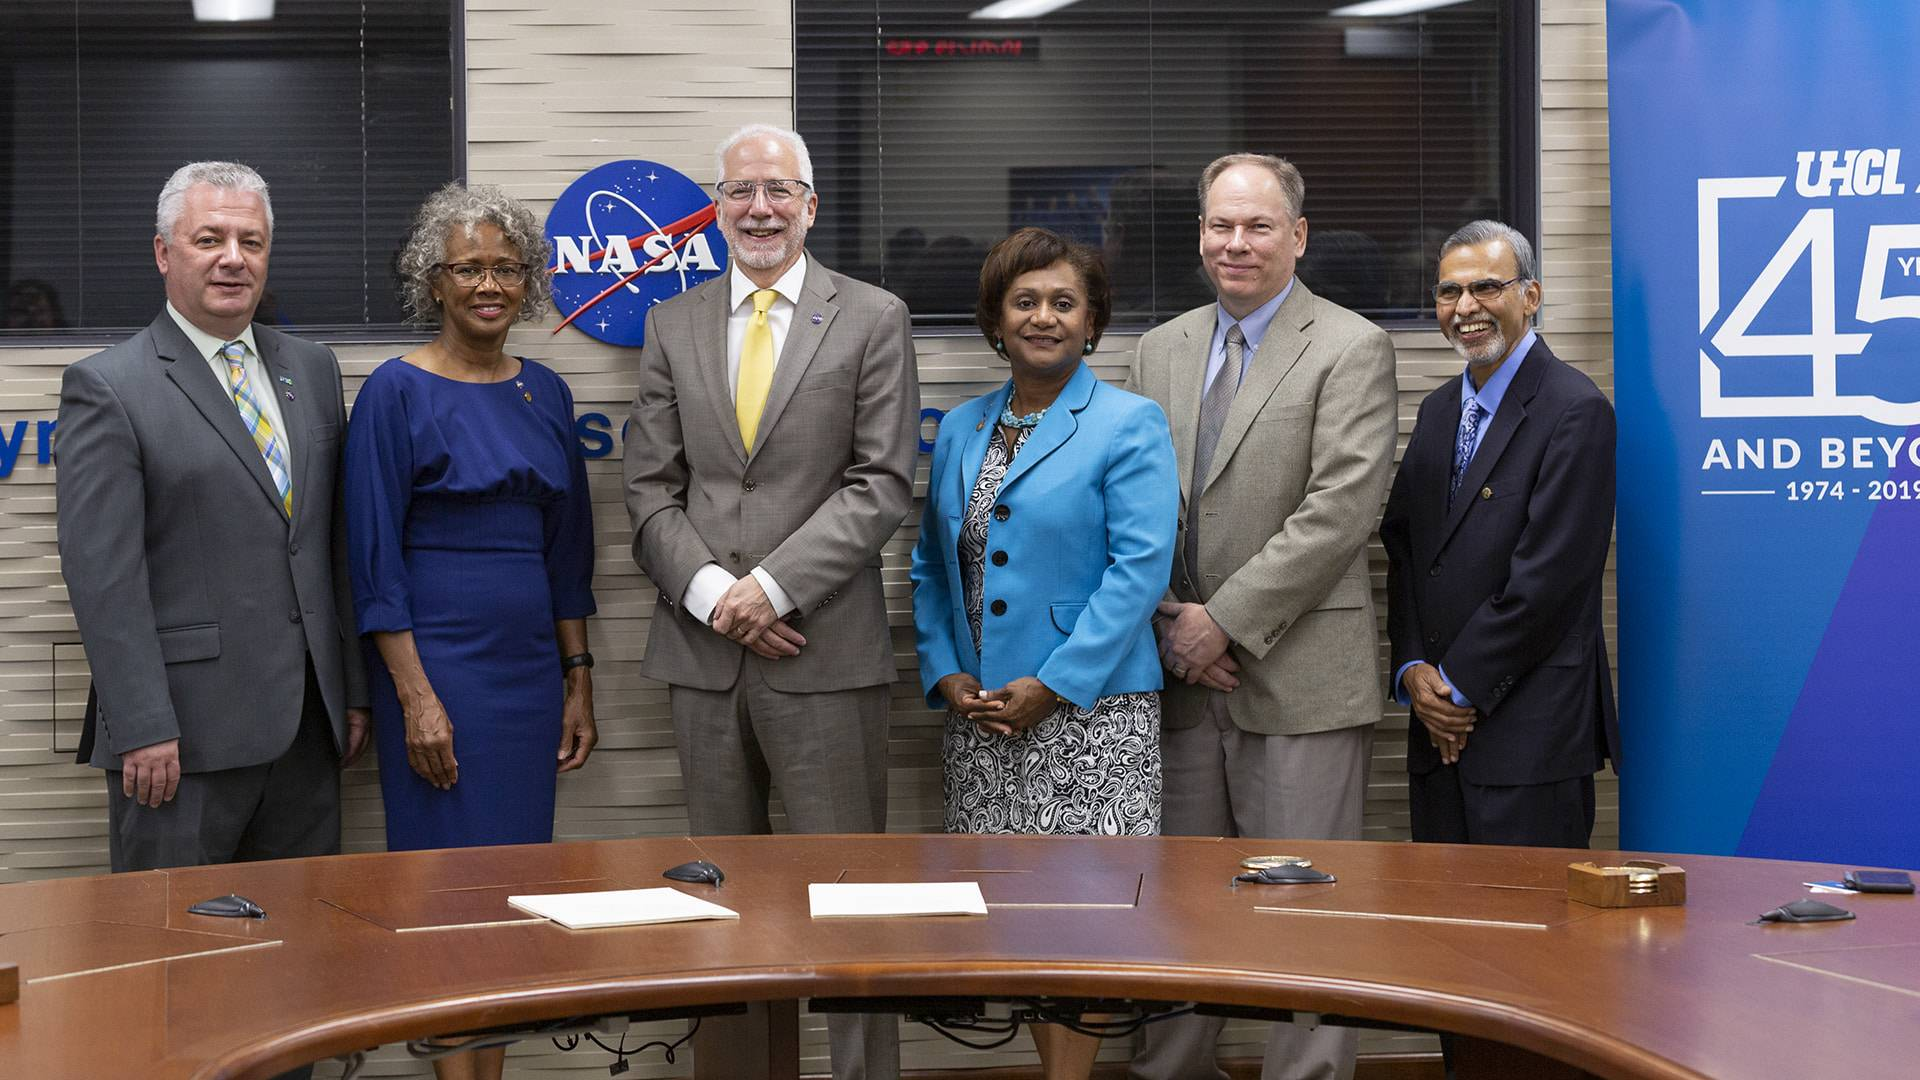 'Great day for all of us': NASA Johnson, UHCL expand partnership